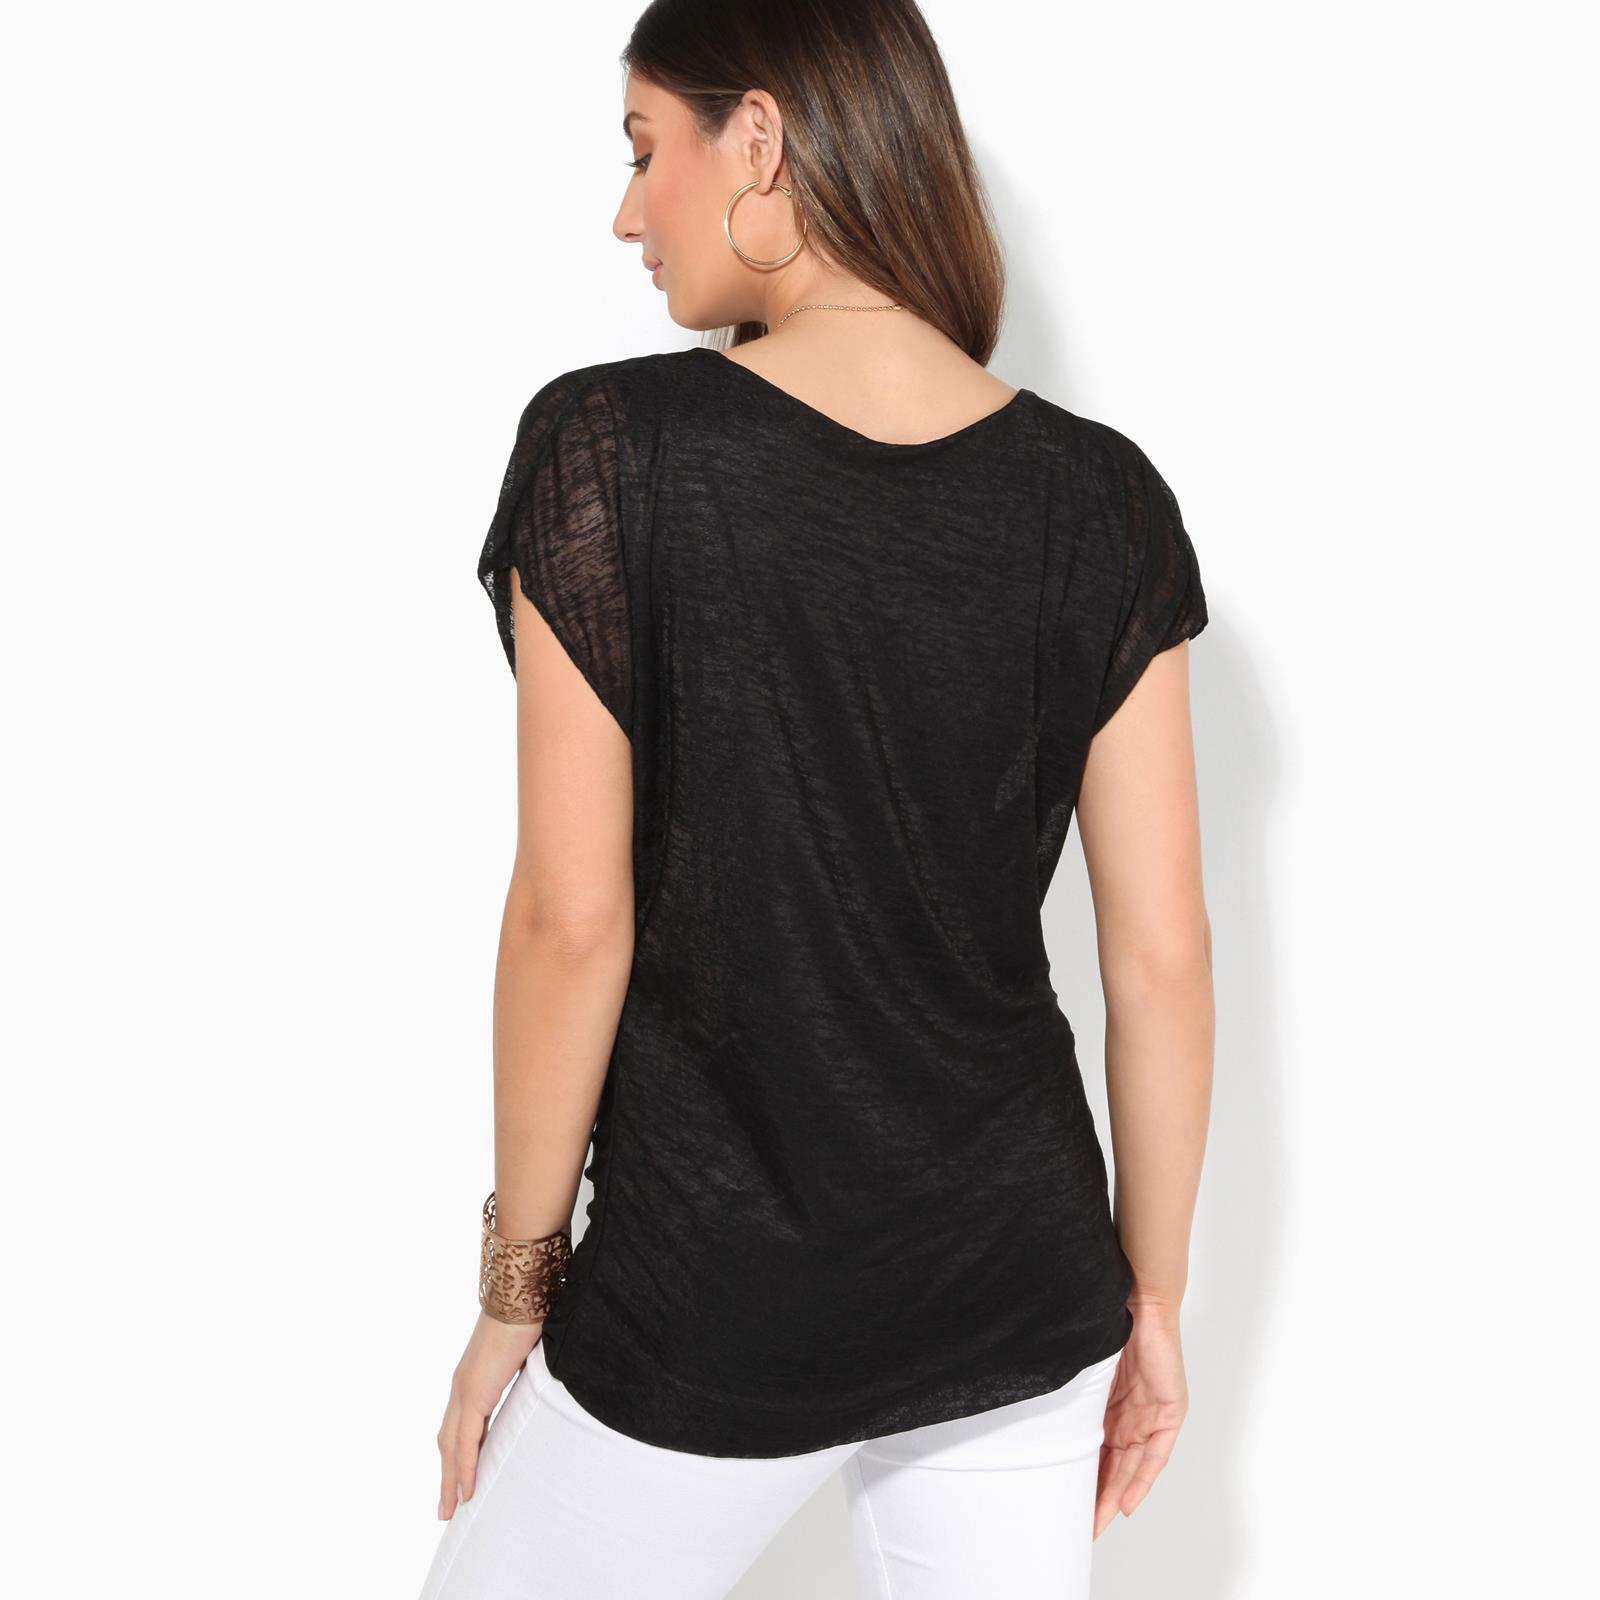 Womens-Ladies-Loose-Drape-T-Shirt-Pleated-Cowl-Neck-Top-Mesh-Tunic-Blouse-2-in-1 thumbnail 3